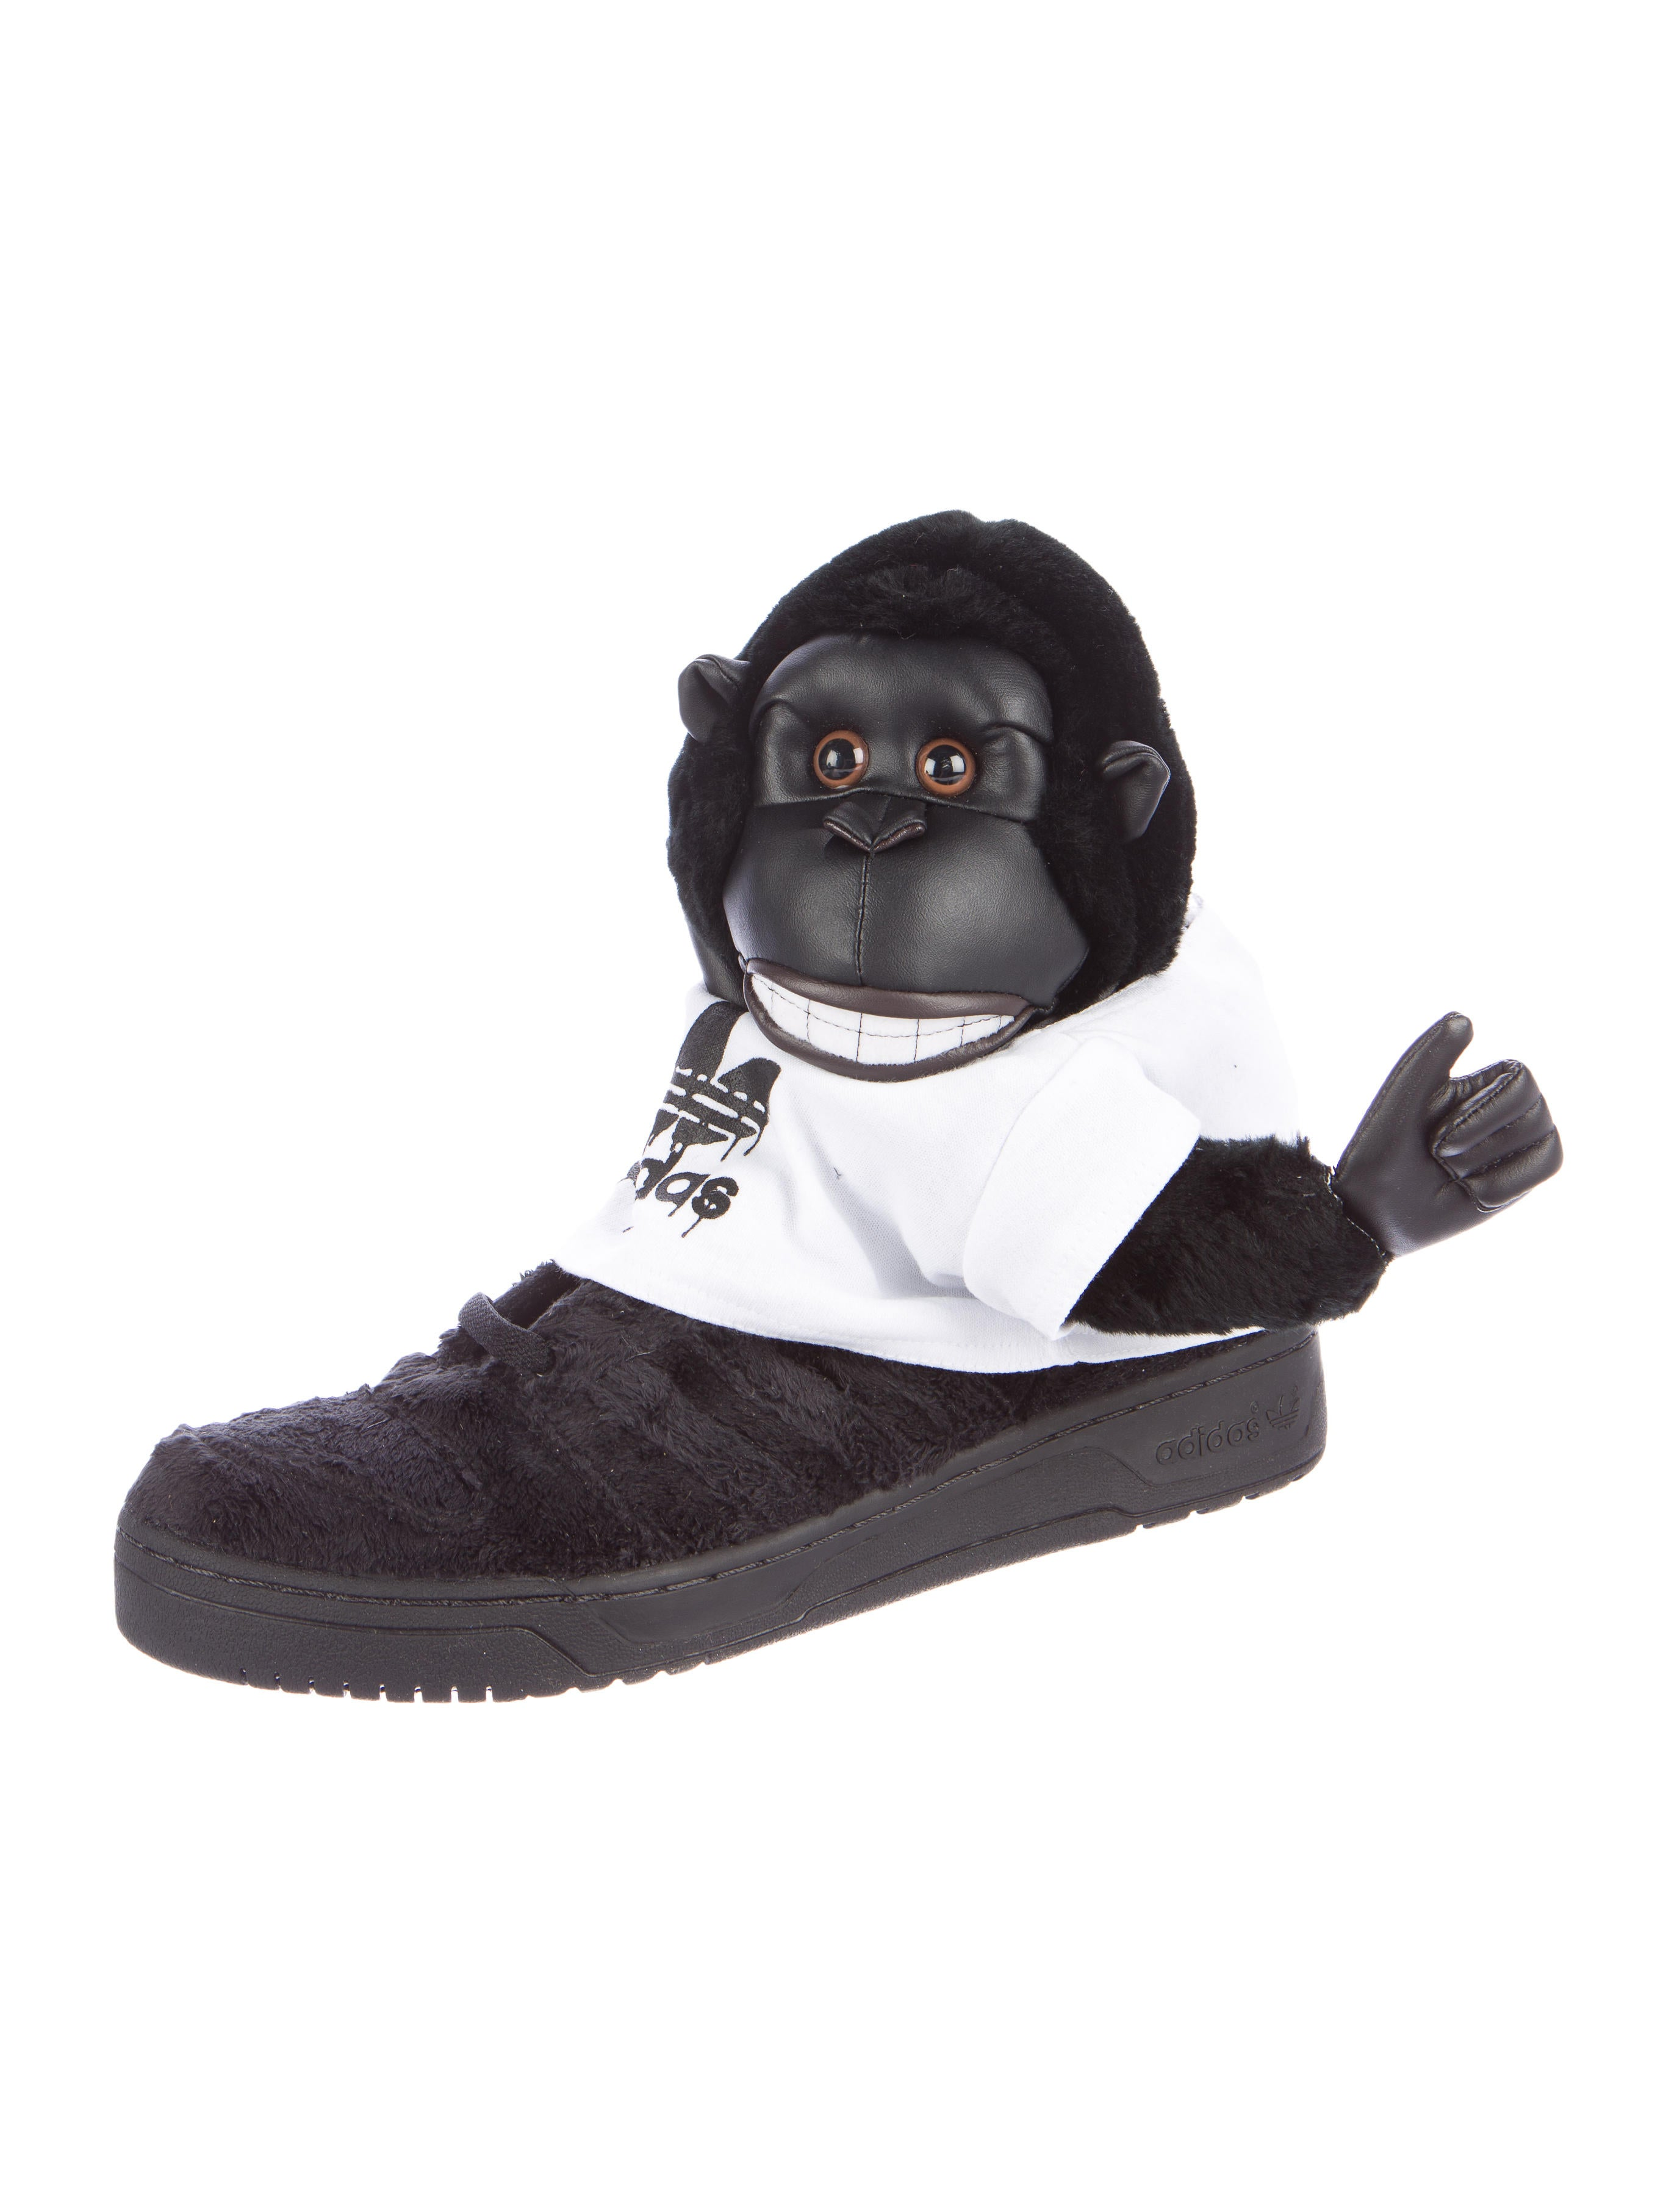 Jeremy Scott x Adidas Gorillas Plush Sneakers w Tags  : WJA201162enlarged from www.therealreal.com size 2749 x 3626 jpeg 367kB